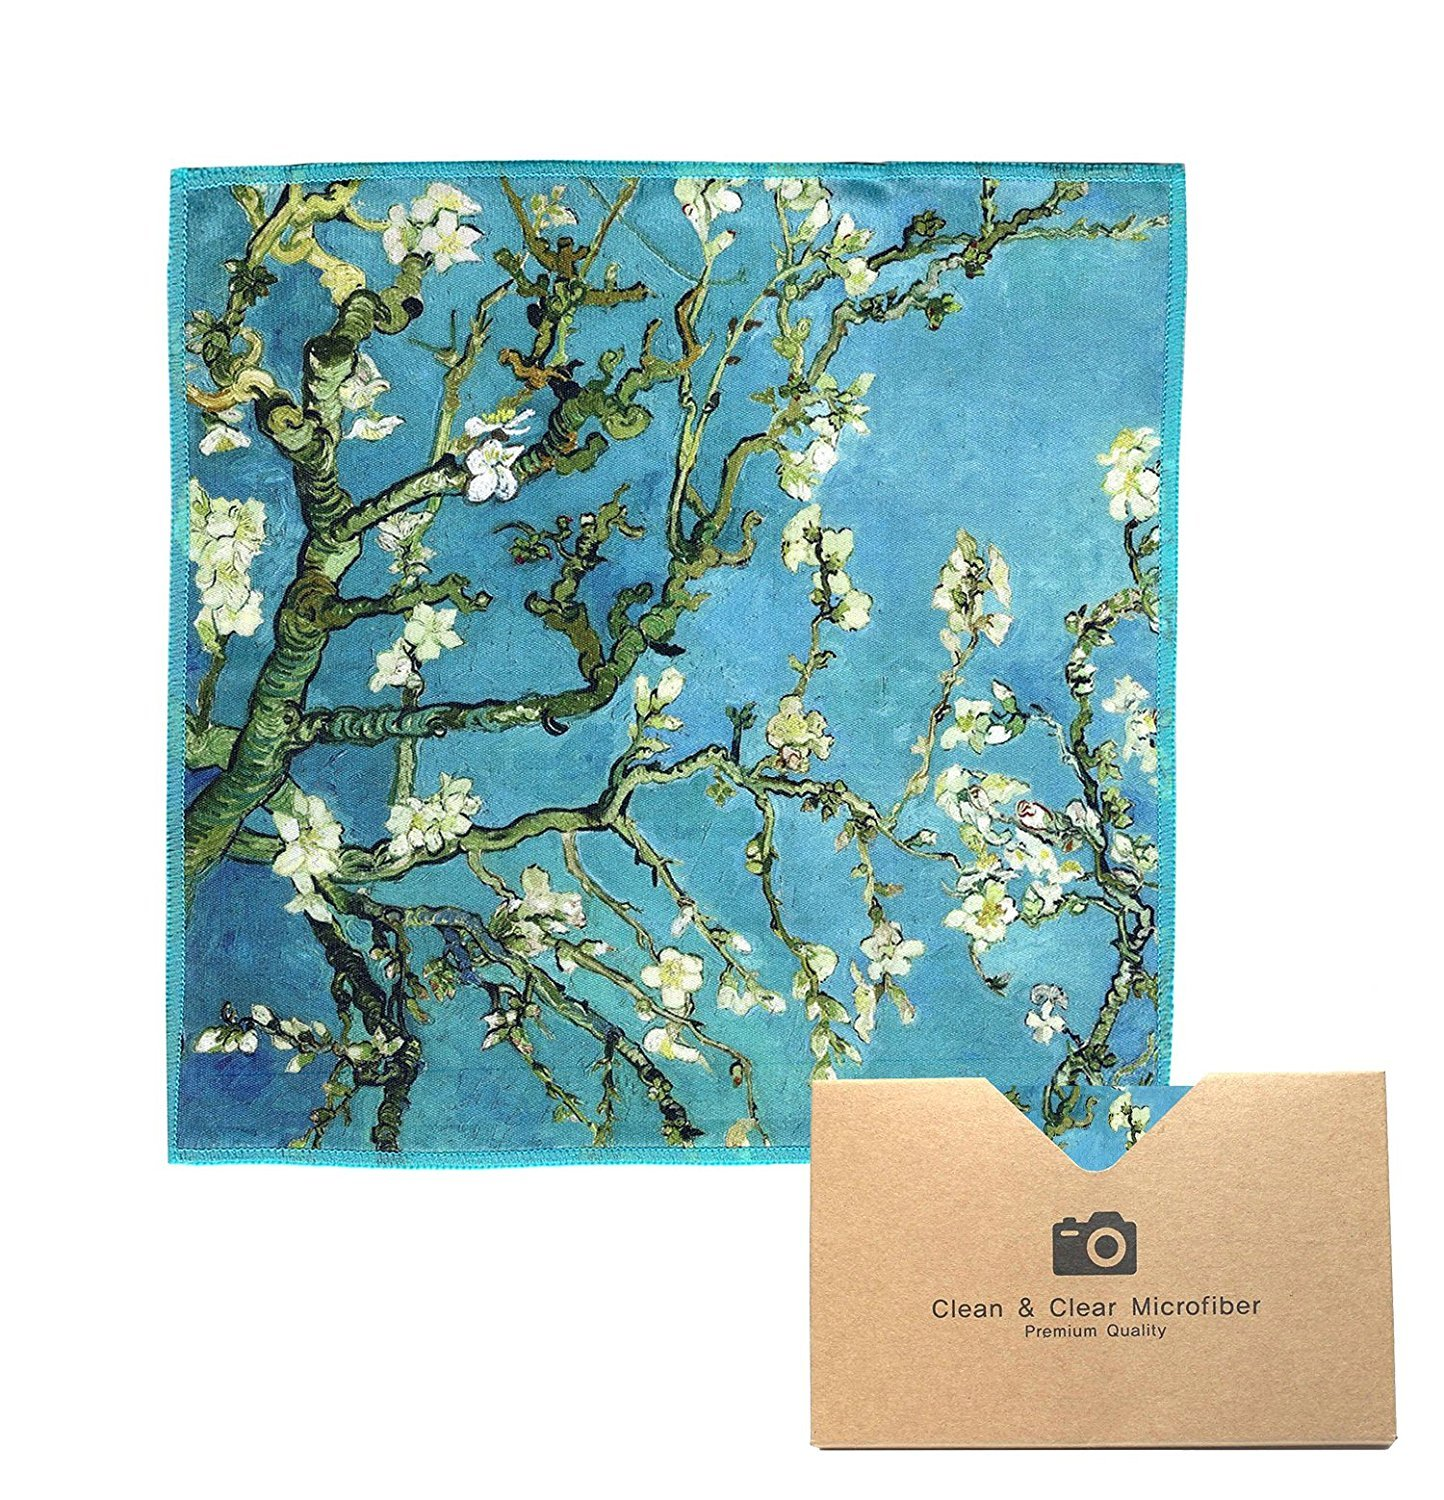 EXTRA LARGE [6 Pack] Classic Art (Vincent Van Gogh 'Almond Blossoms') - ULTRA PREMIUM QUALITY Microfiber Cleaning Cloths (Best for Camera Lens, Glasses, Screens, and all Lens.) Clean & Clear Microfiber 4330116568